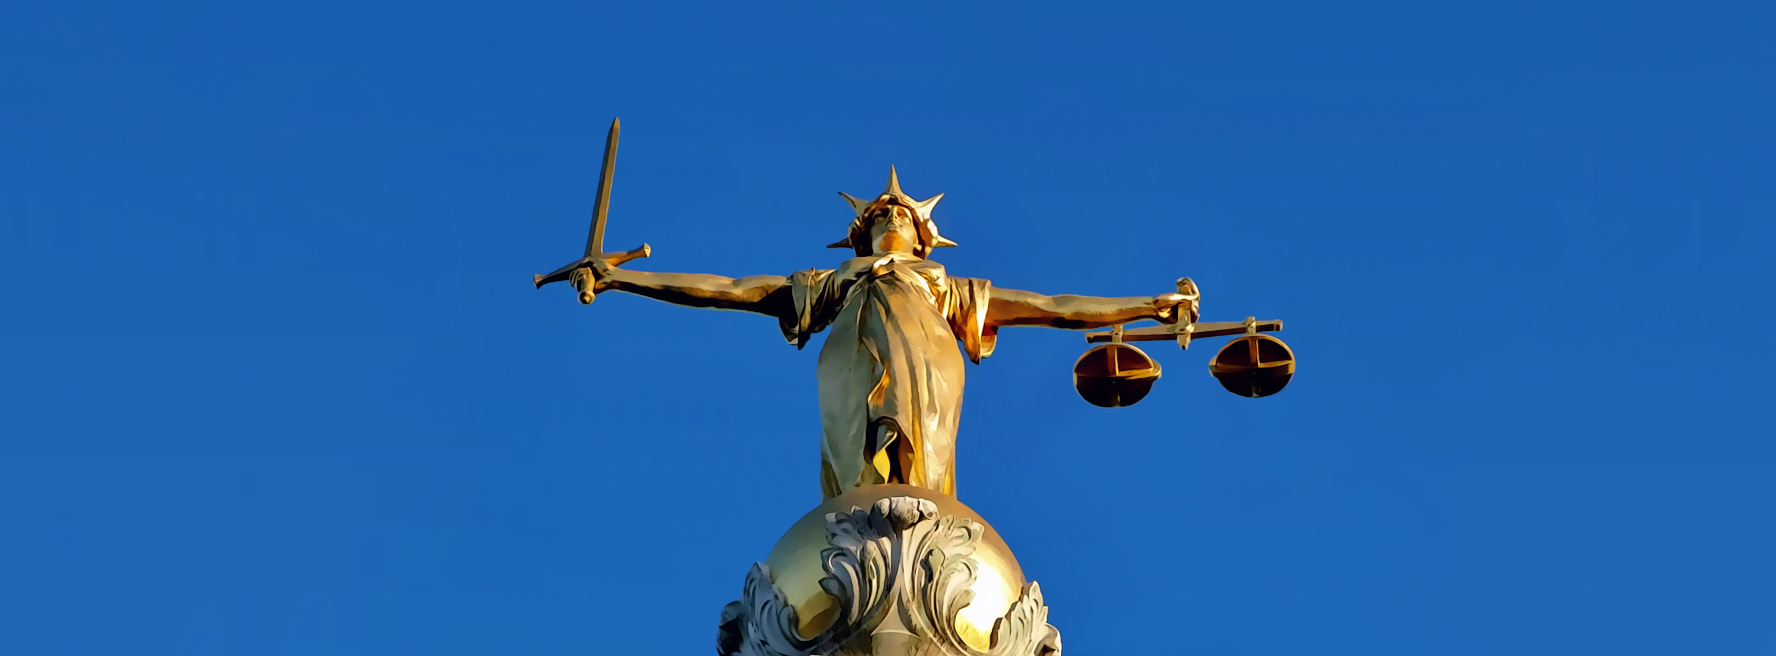 UNILAD Artists impressions of Lady Justice statue on the Old Bailey London8 School Officials Use Girl As Bait In Rape Sting, She Gets Raped